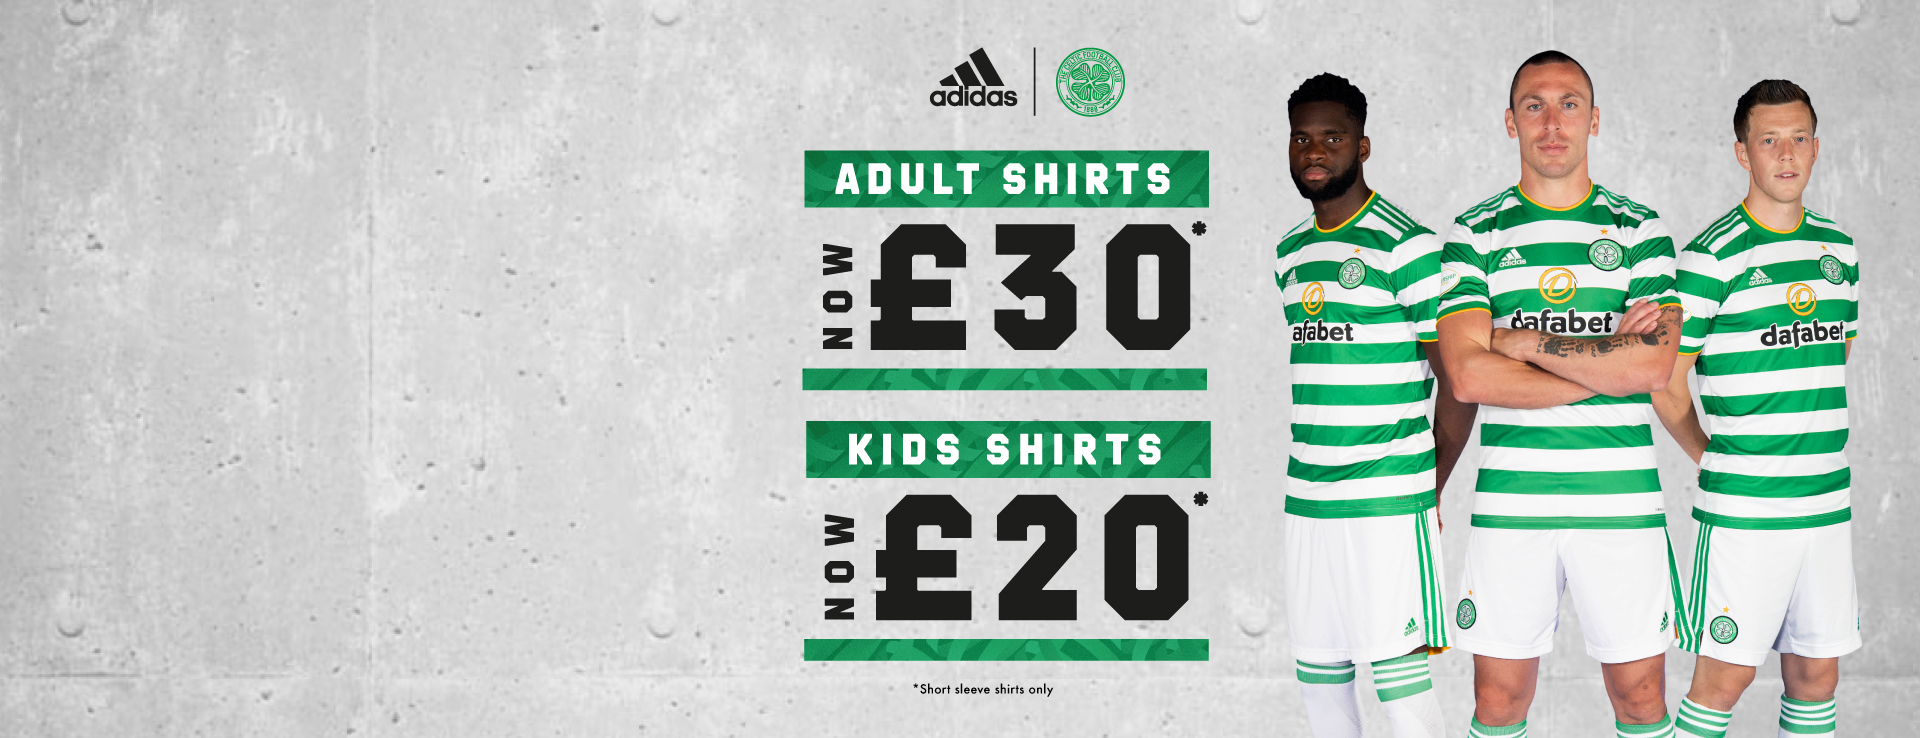 Celtic FC 2020/21 Home Kit Reductions